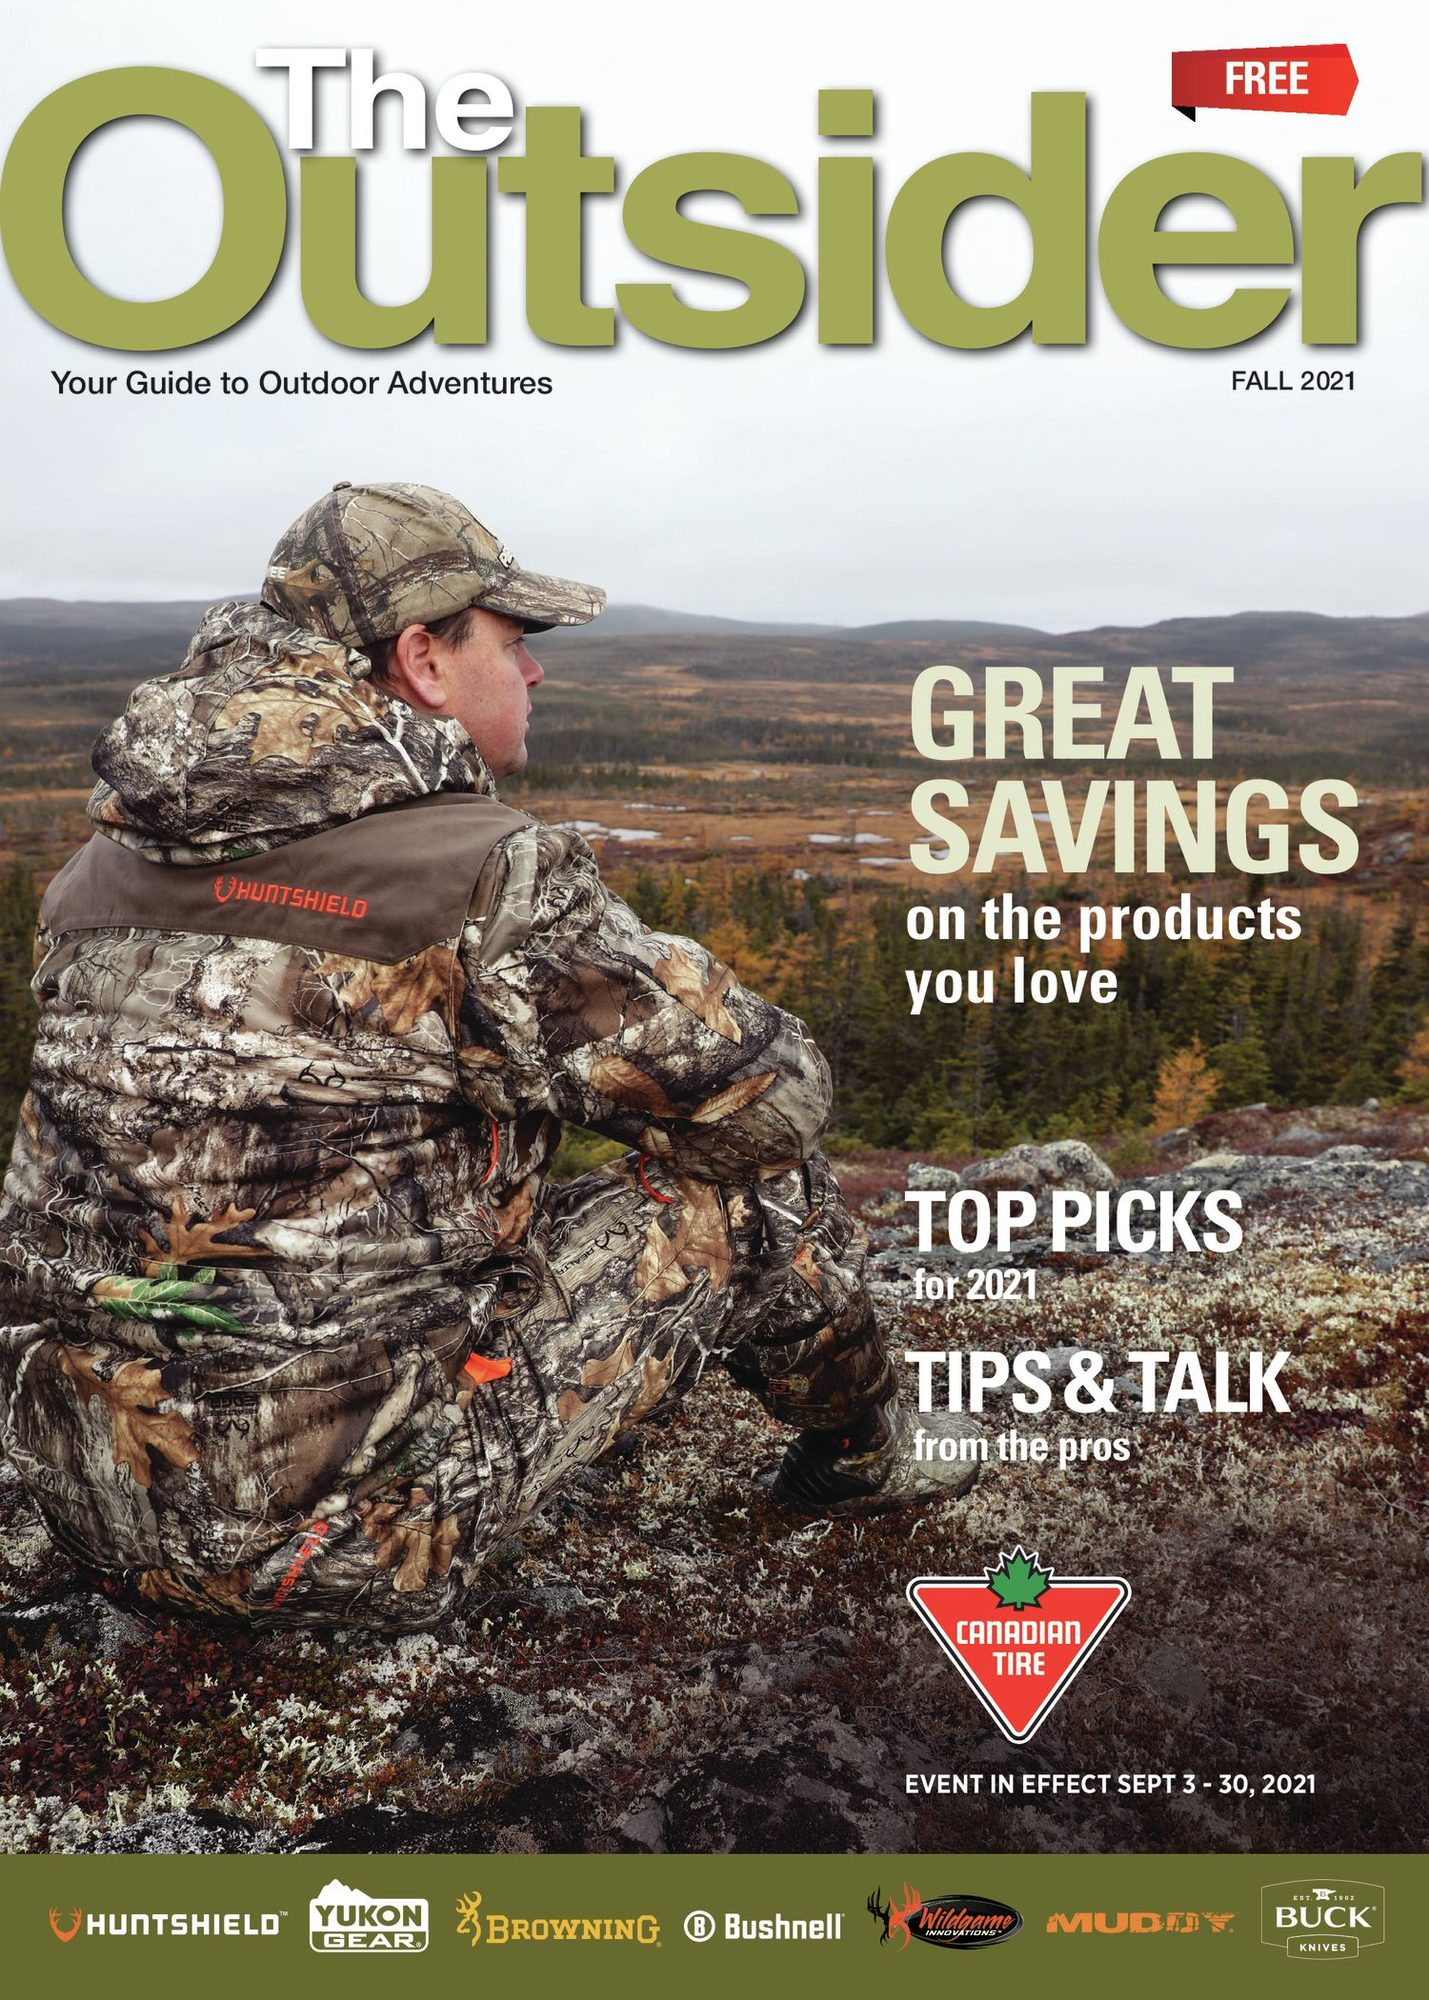 Canadian Tire - The Outsider - Fall 2021